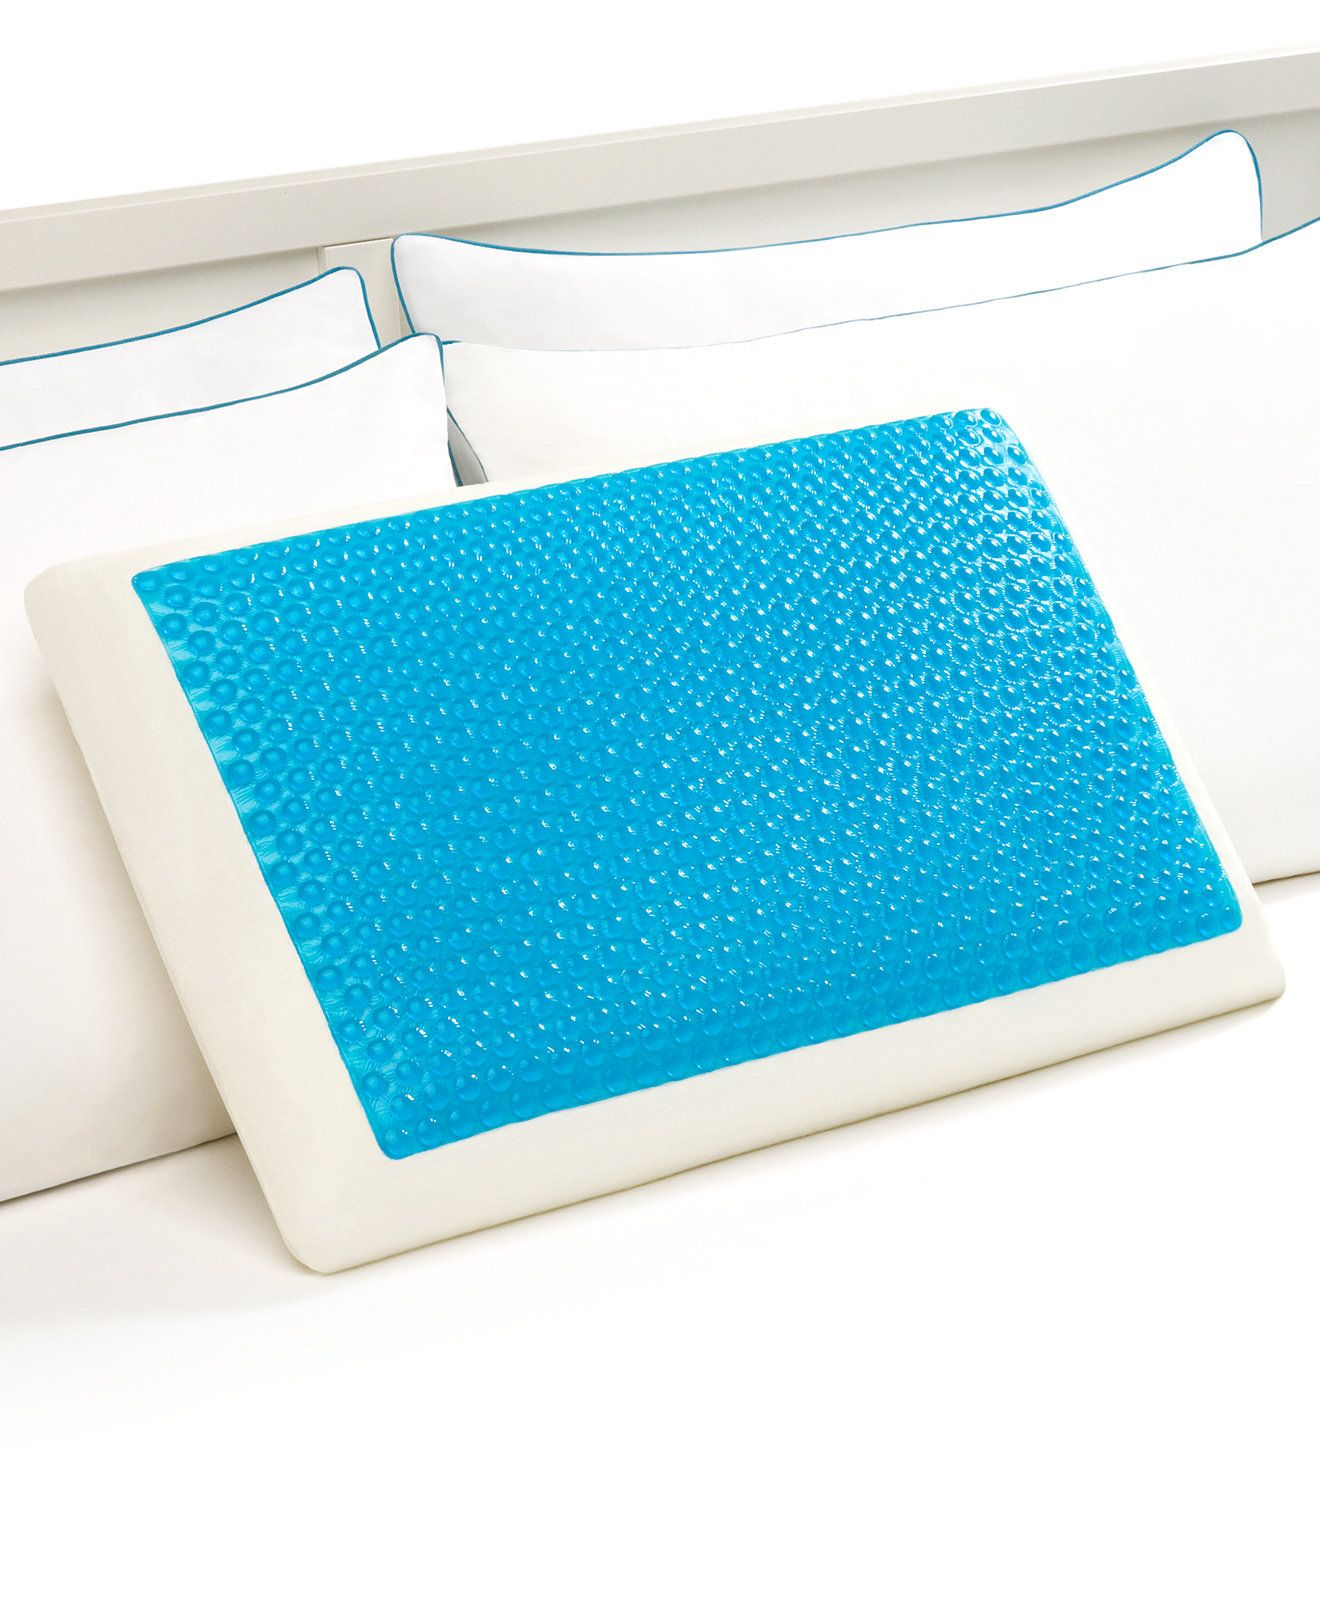 cooling on reversible gel cool bedding foam free product pillow tempure memory bath shipping rest loft